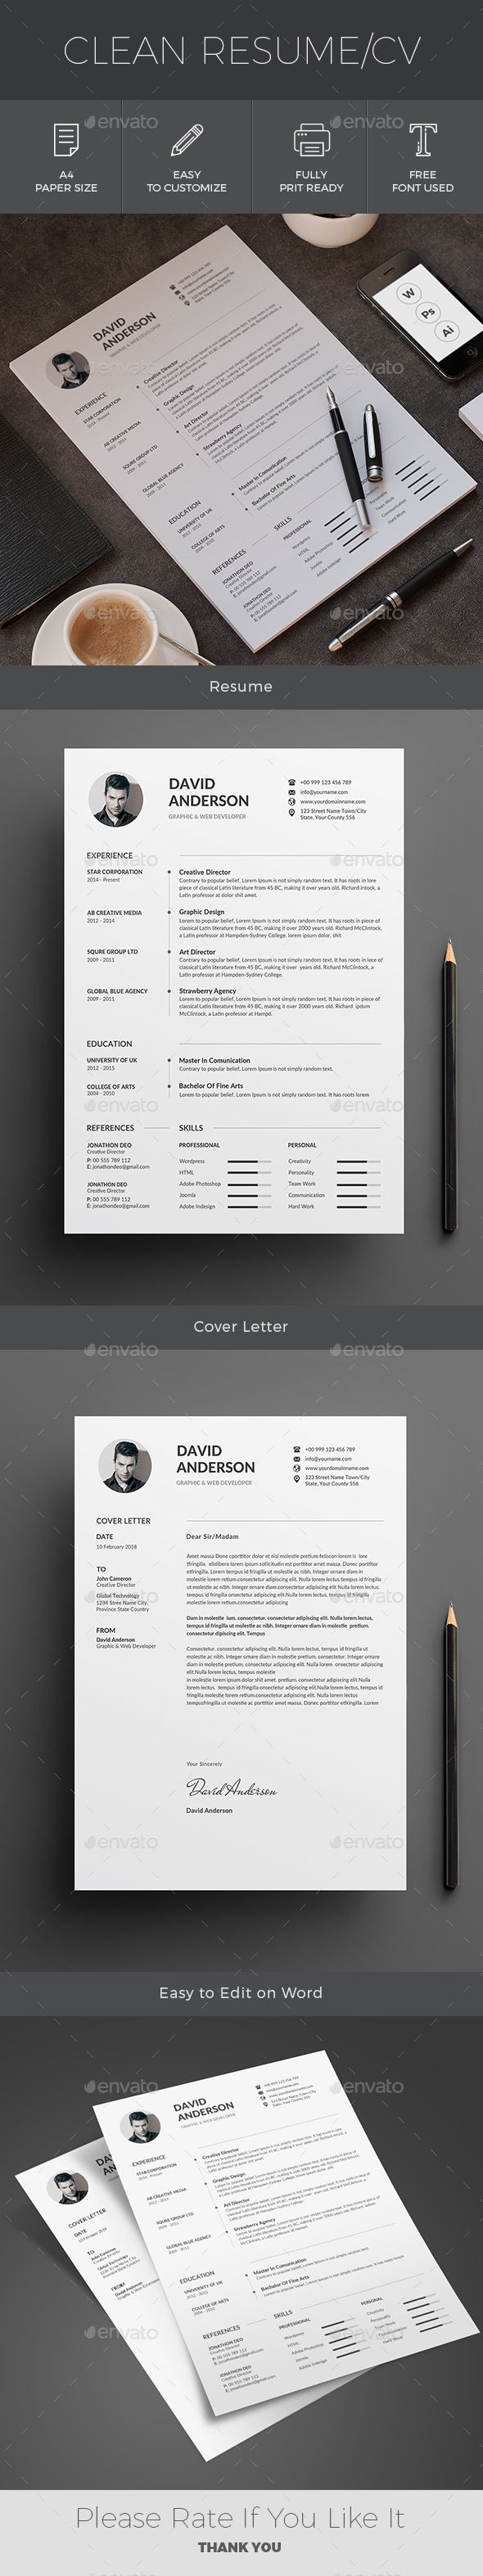 resume ai illustrator cv template word download https